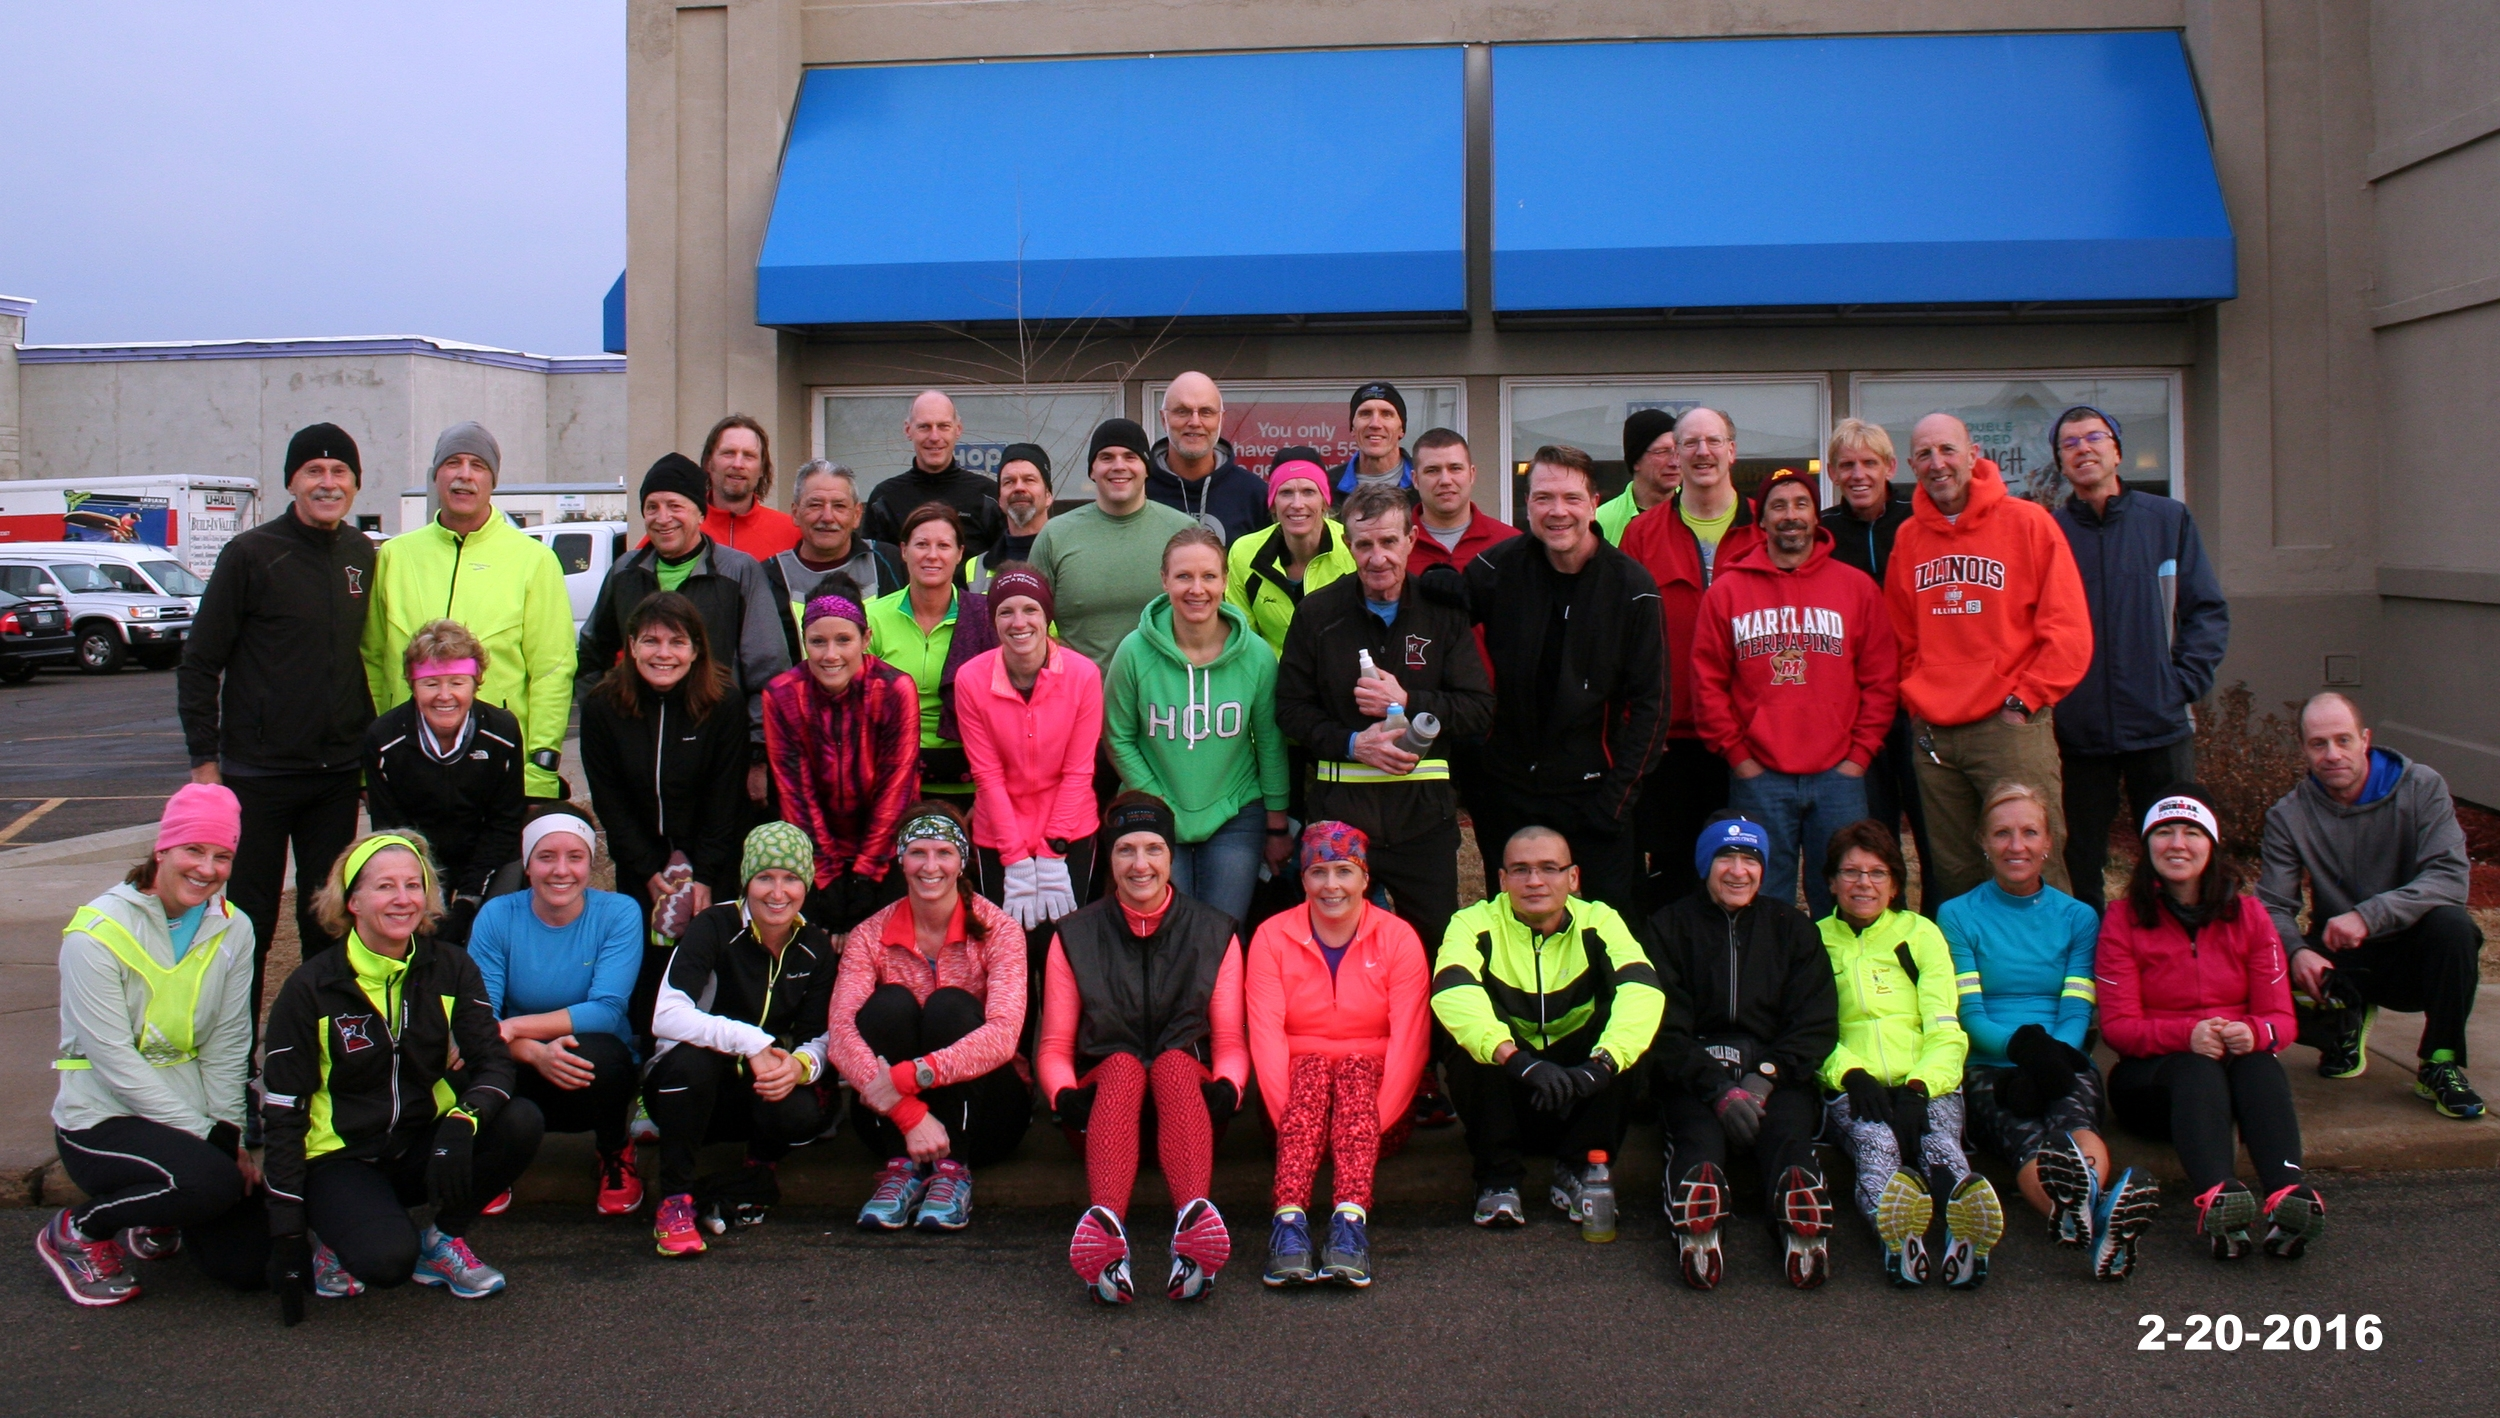 Breakfast Run 2-20-2016